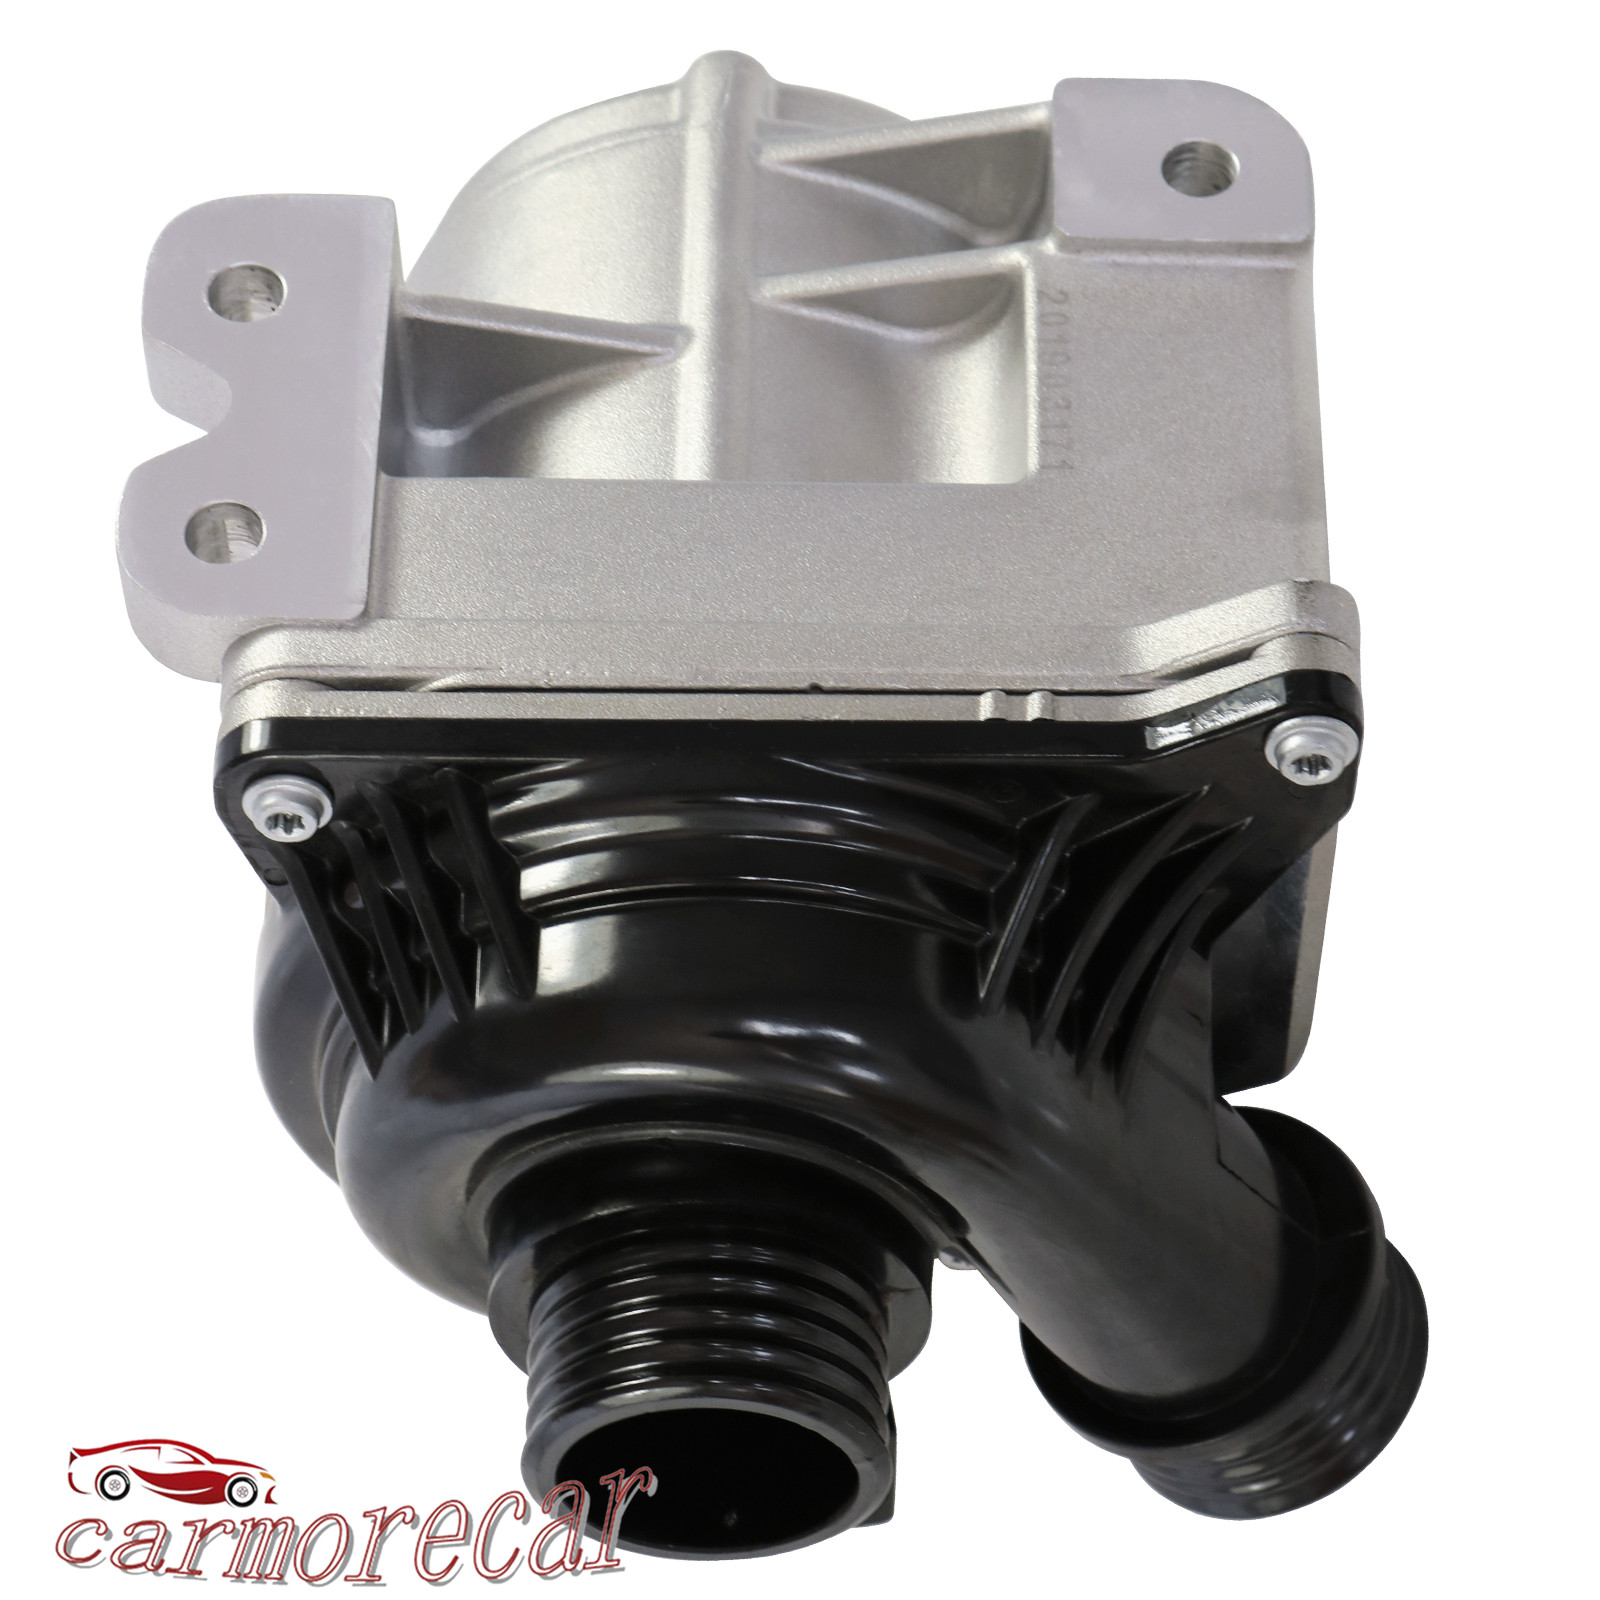 A2C59514607 Water Pump For 2007-11 BMW X3 X5 X6 Z4 335i